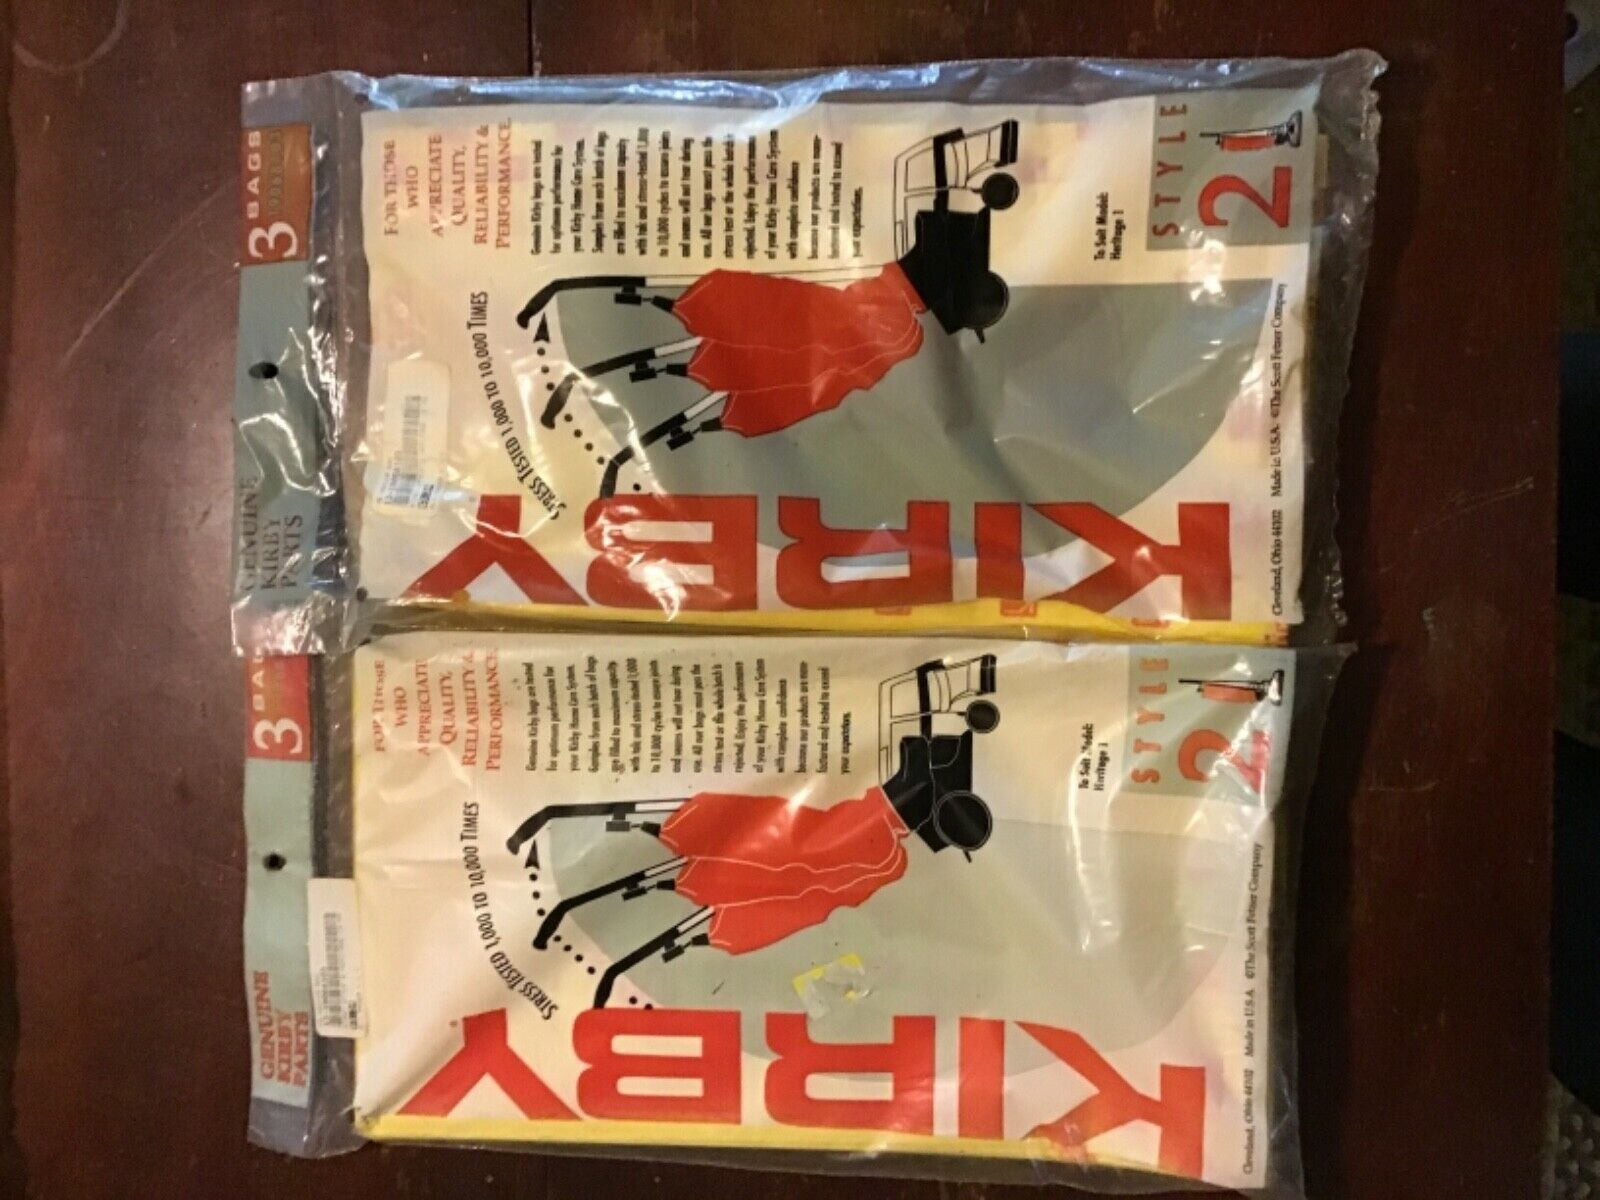 Lot of 2 Kirby Style 2 Vacuum Cleaner Bags  6 pcs per bag 12 total PCs